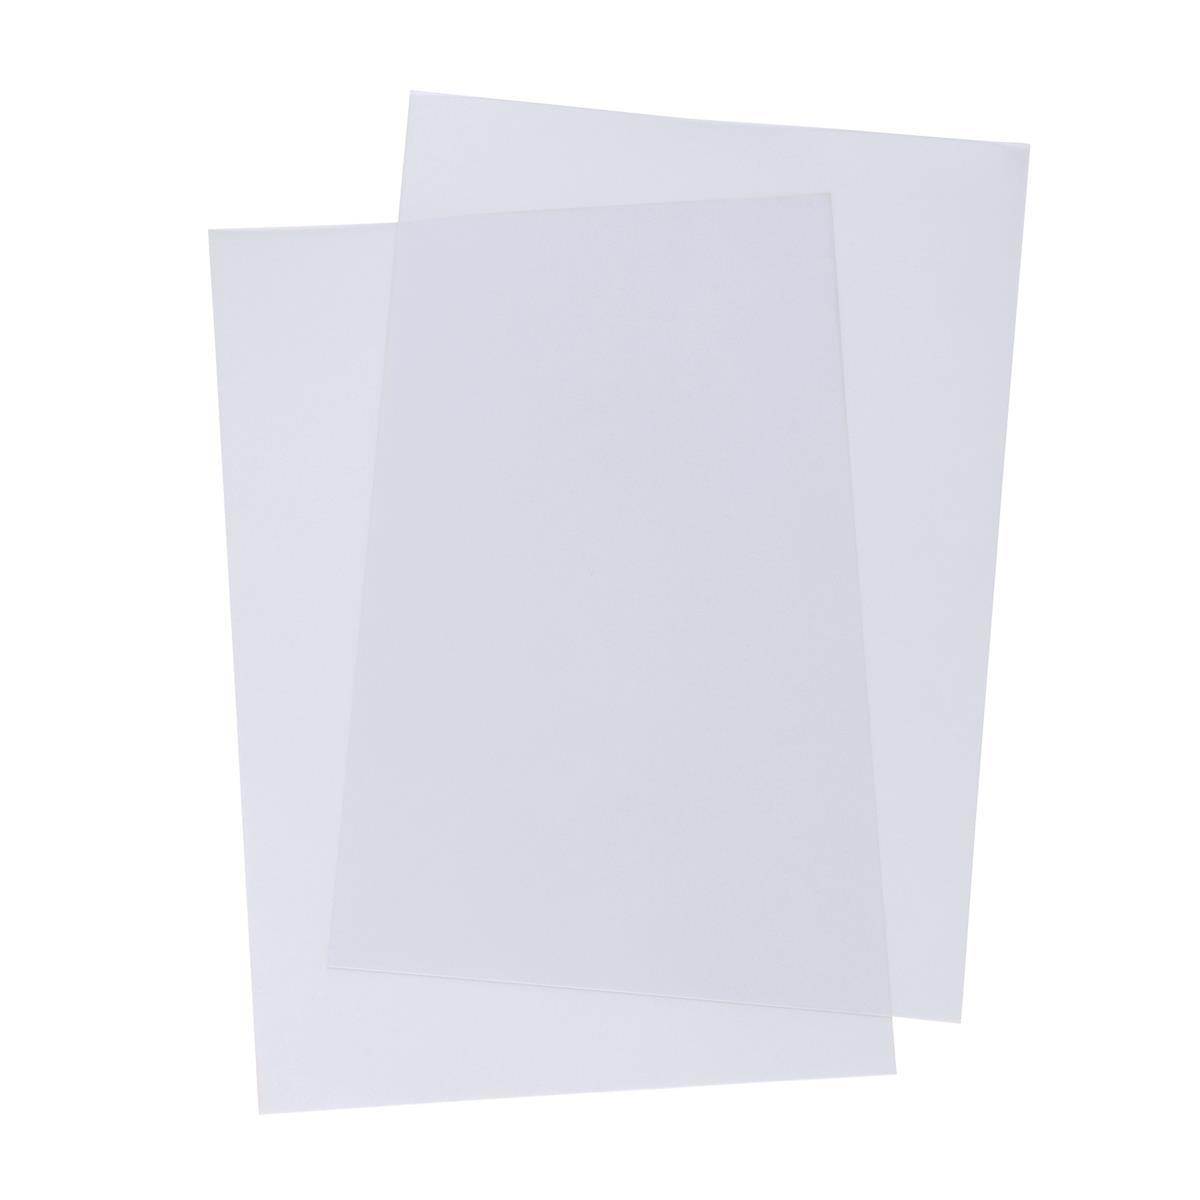 5 Star Office Binding Covers 300micron A4 Frosted Pack 100